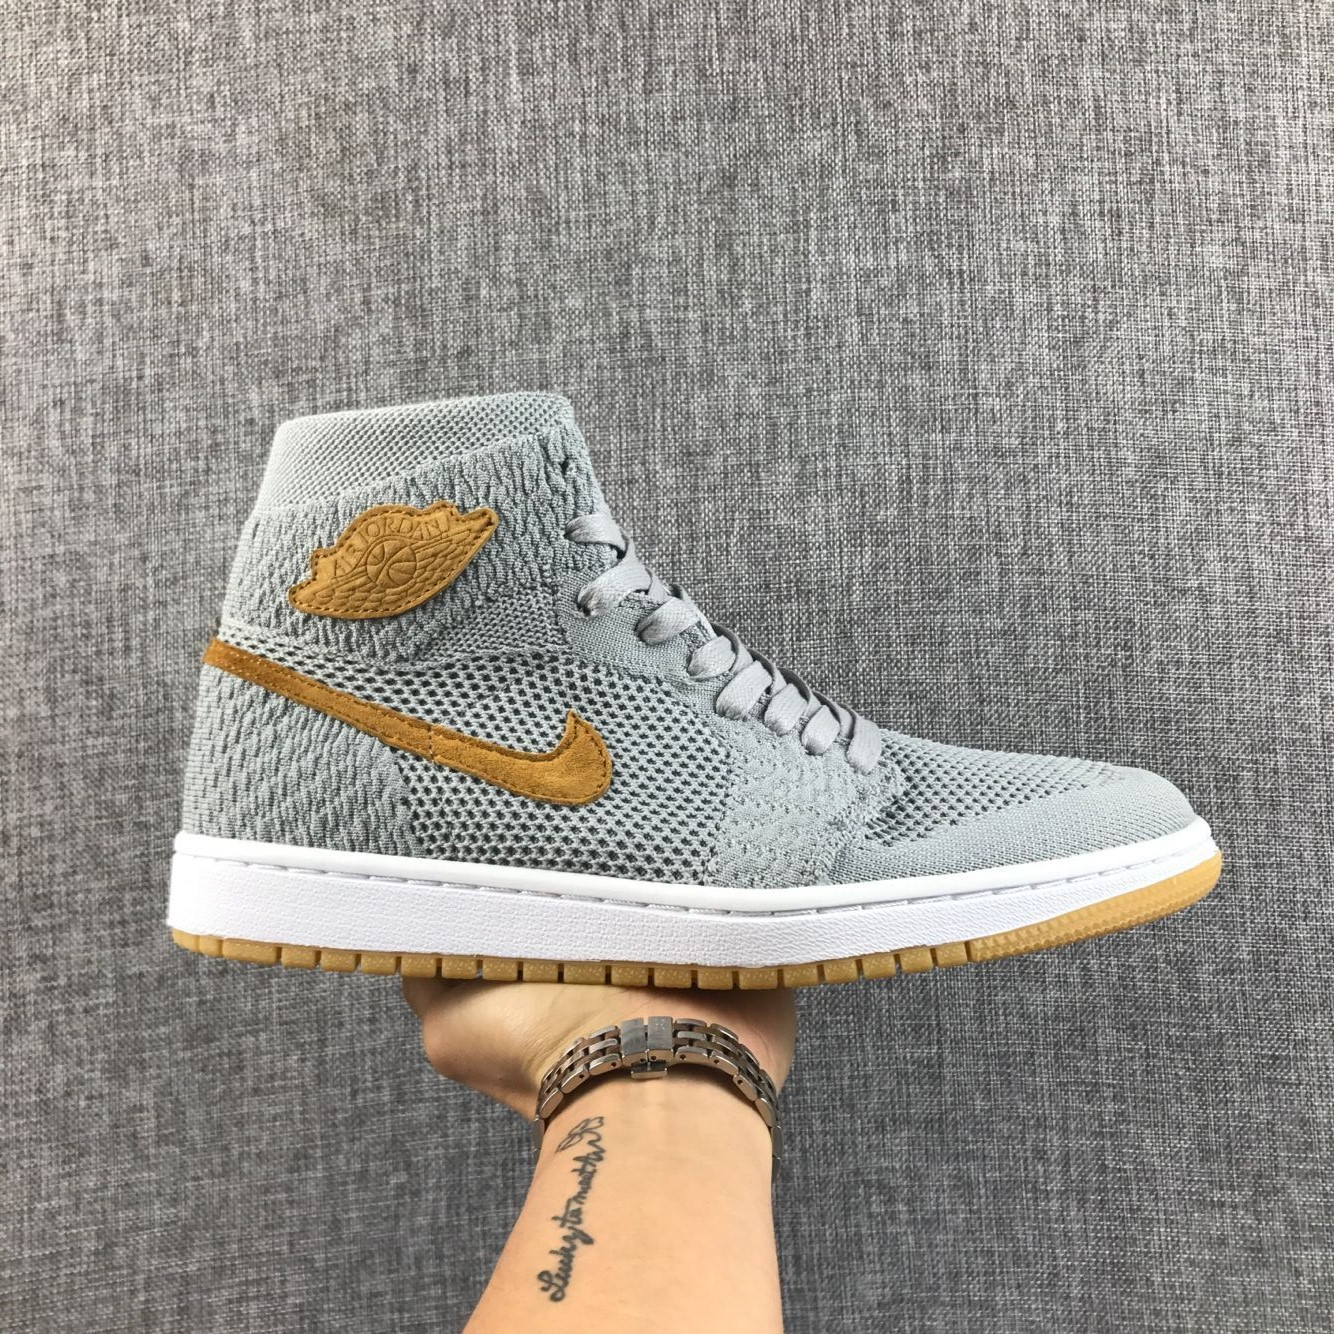 2017 Men Air Jordan 1 Flyknit Grey Yellow Shoes